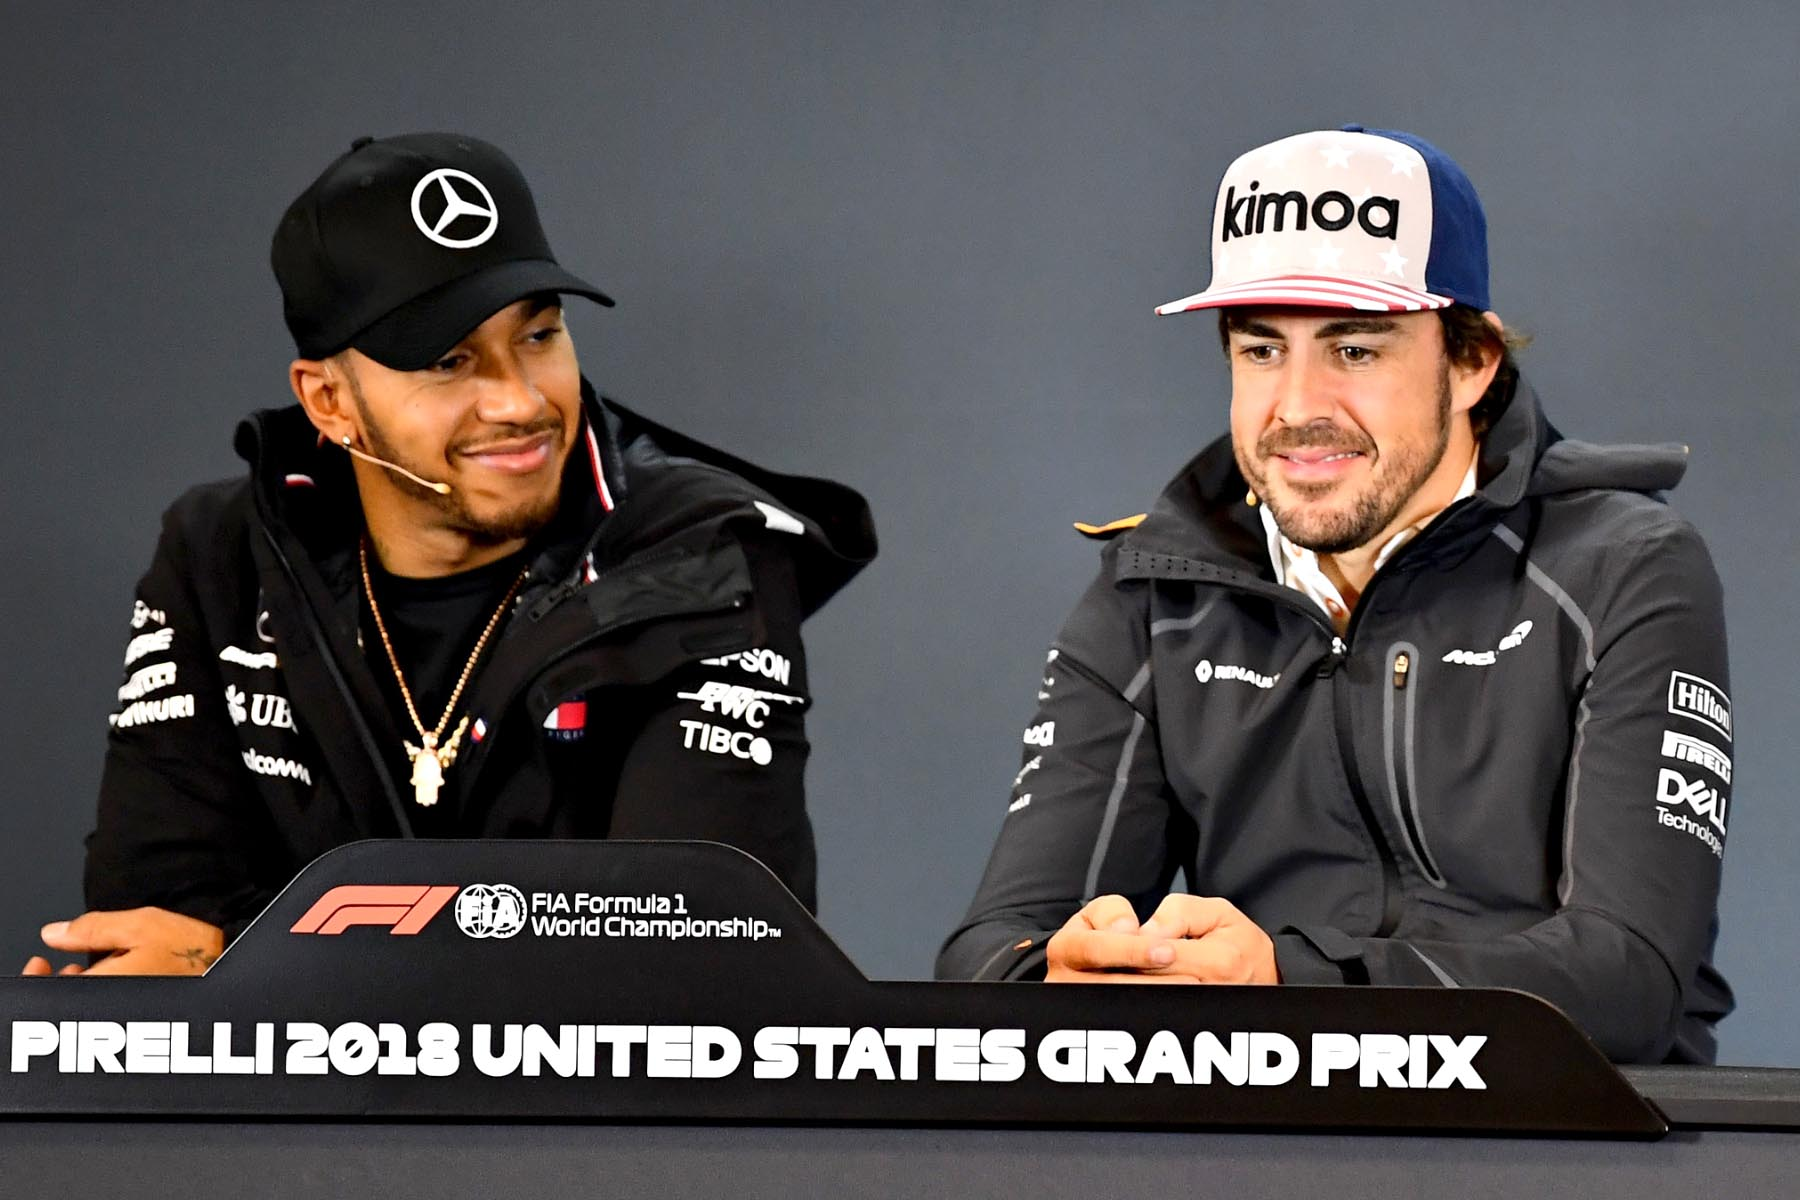 Lewis Hamilton and Fernando Alonso in the pre-race United States Grand Prix press conference.